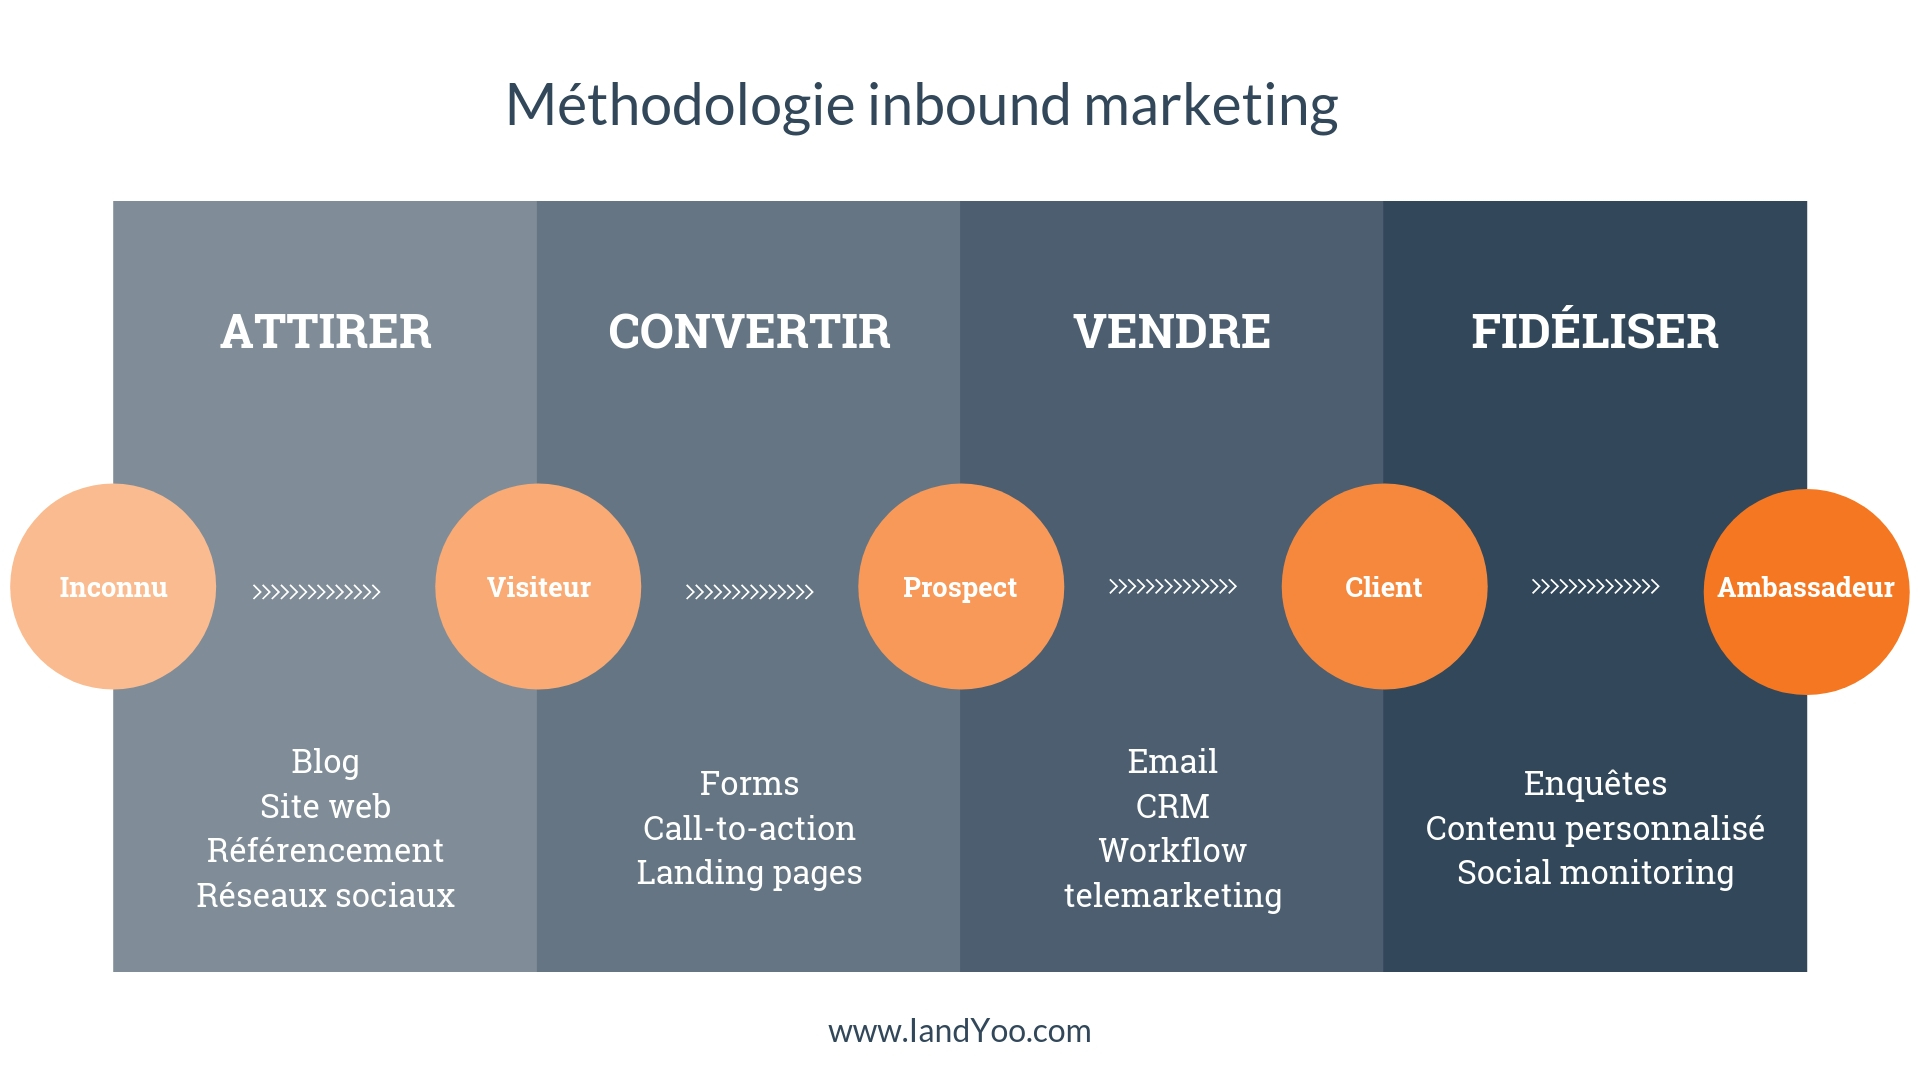 Smarketing - alignement avec la Méthodologie inbound marketing IANDYOO